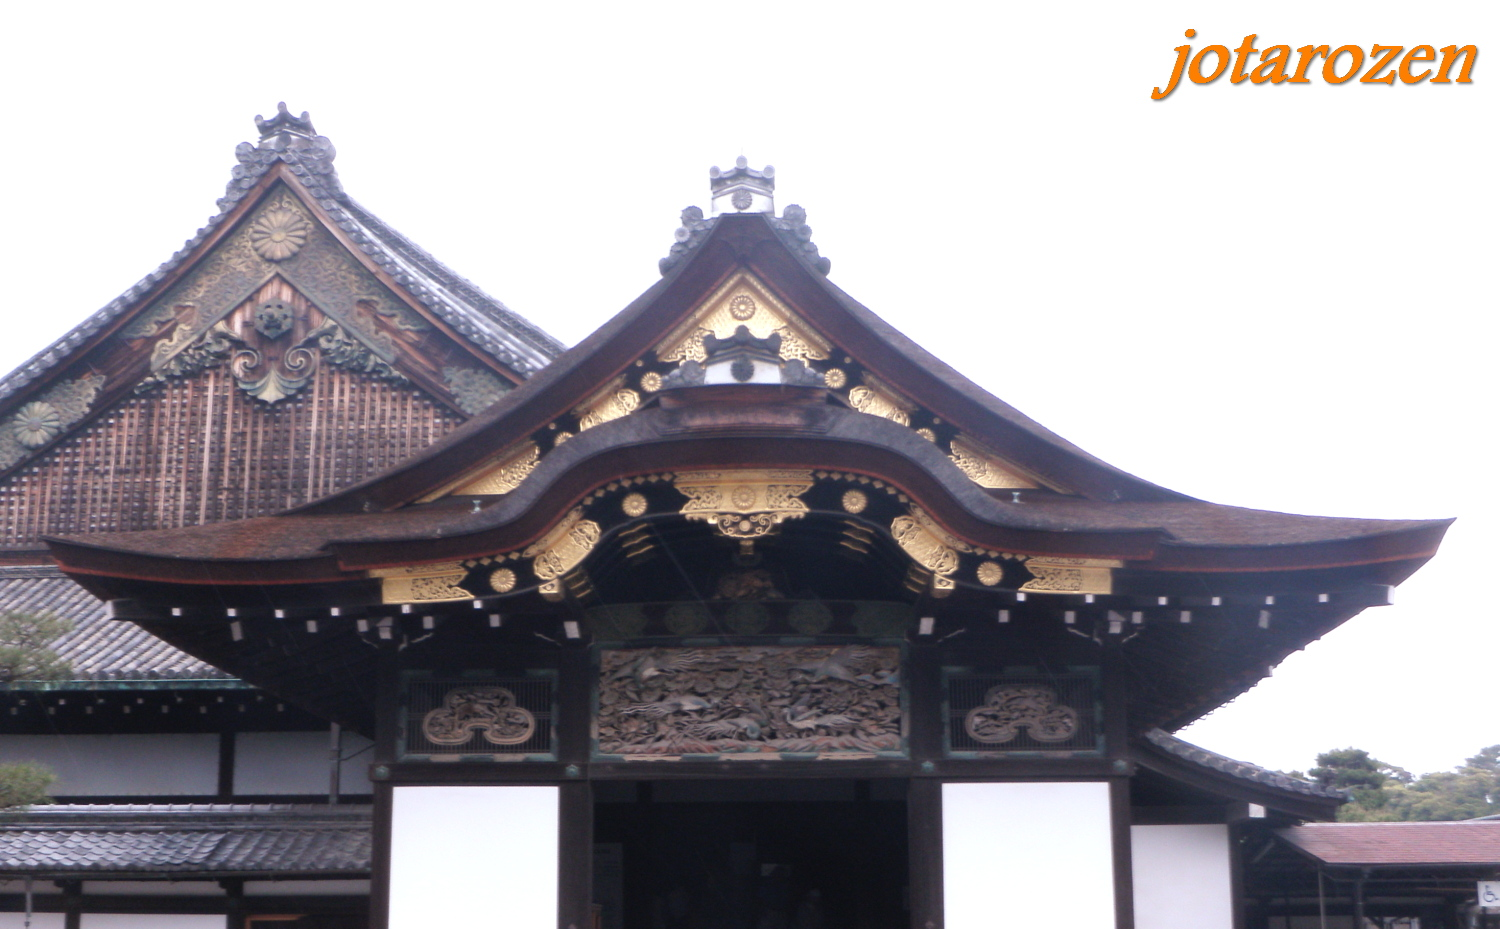 Footsteps Jotaro S Travels Photo Gallery Japan Kyoto